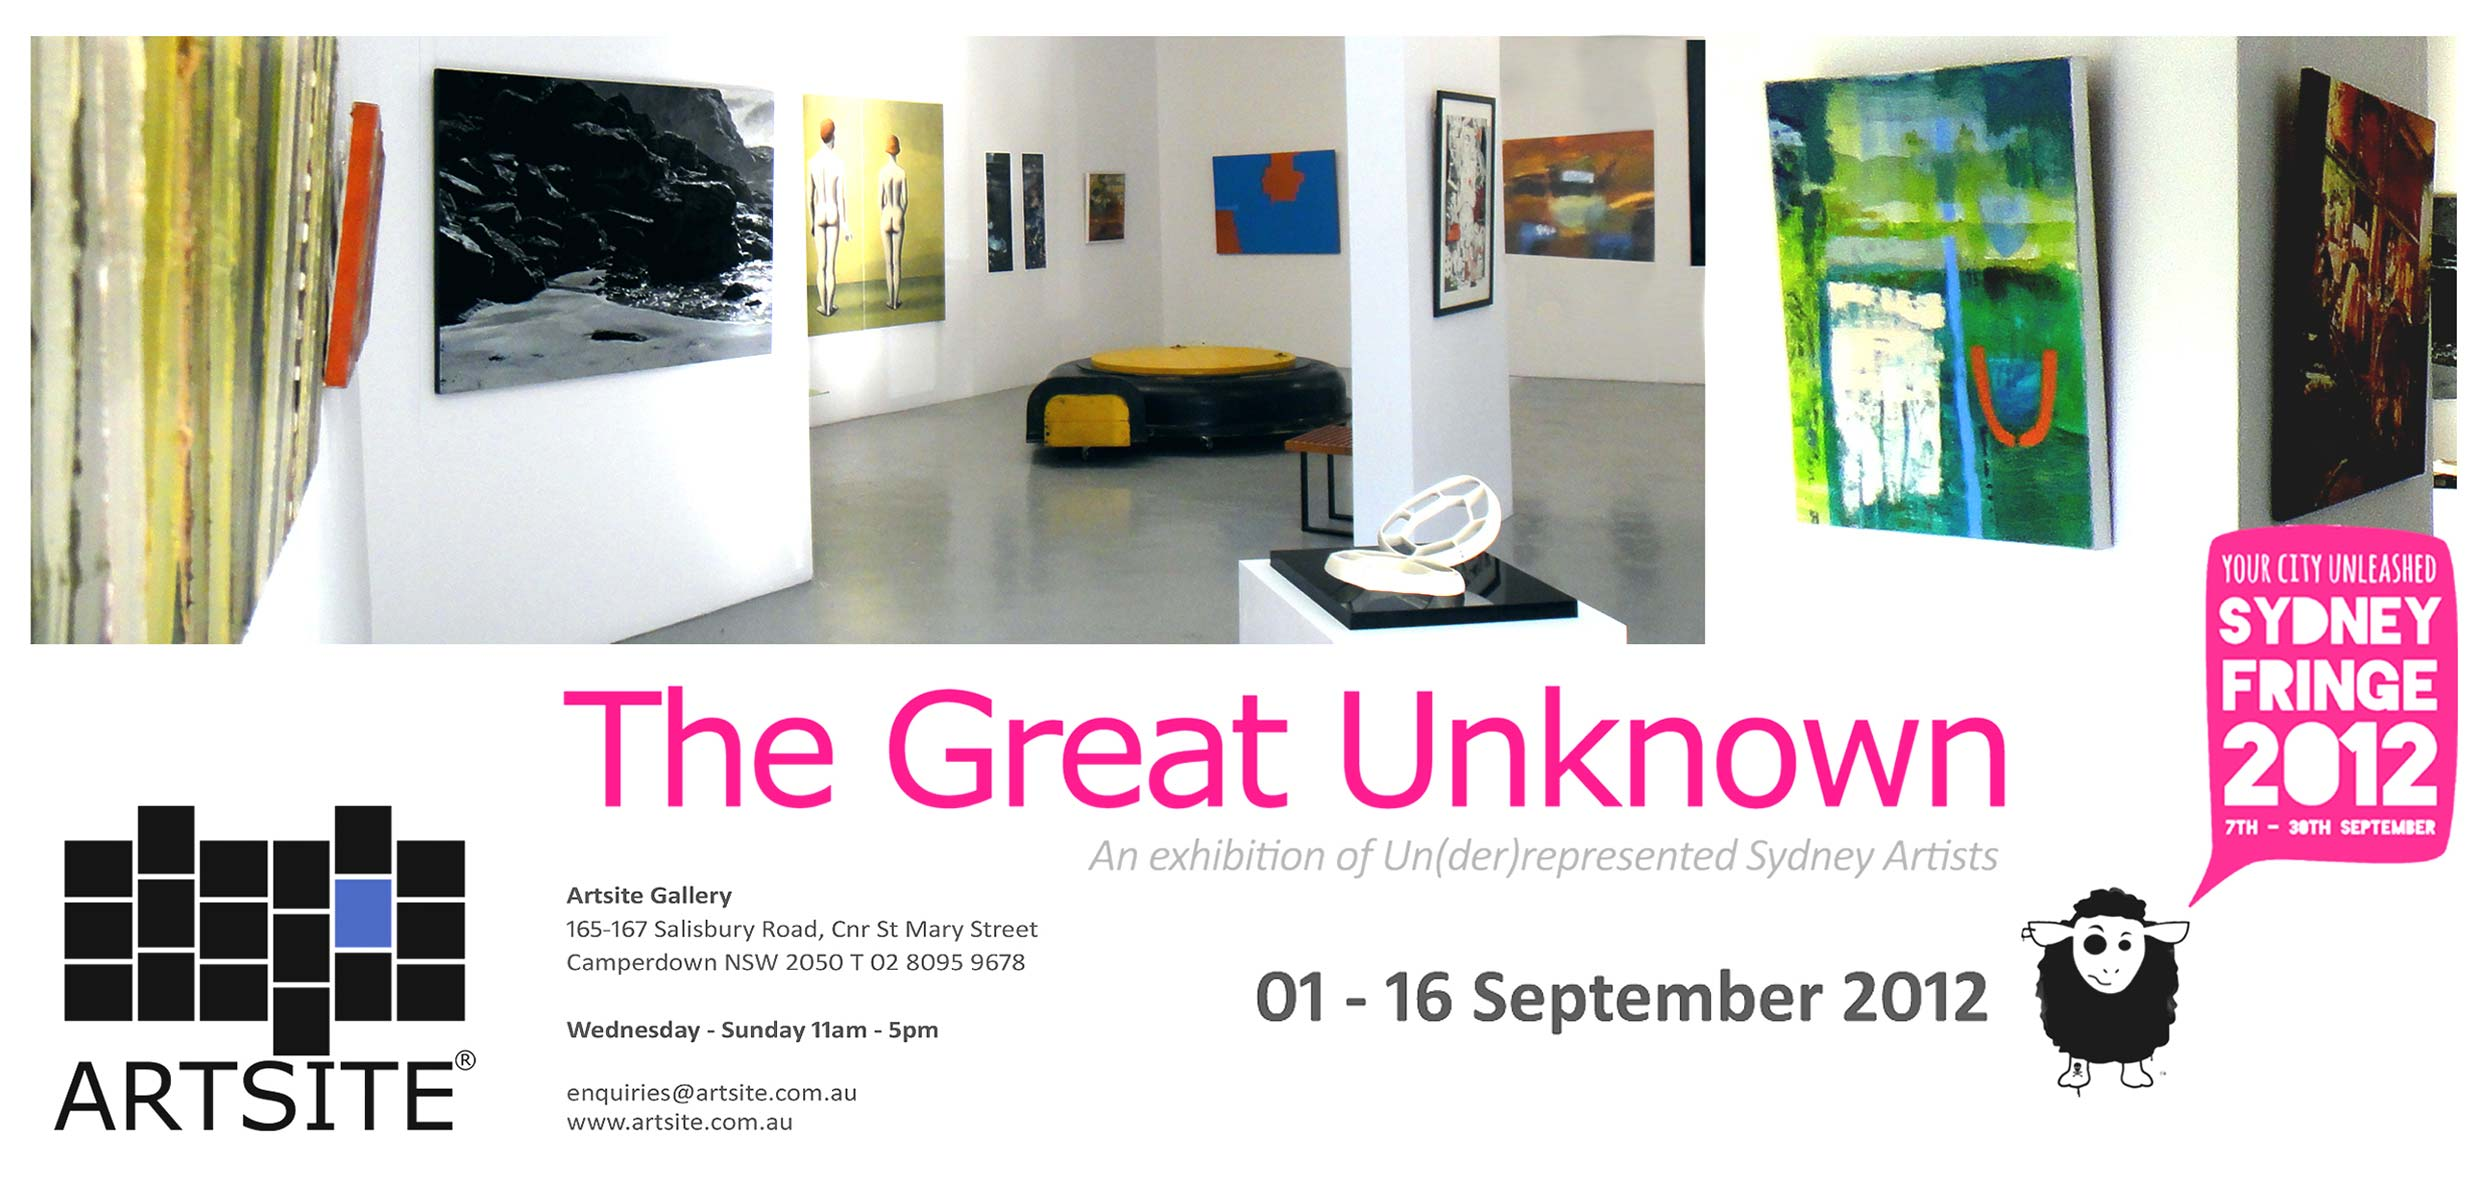 View Exhibition at Artsite Gallery. 01 - 16 September 2012: GU12 - The Great Unknown 2012 - A Curated Exhibition of Un(der)Represented Sydney Artists - Official Selection of the Sydney Fringe Festival 2012